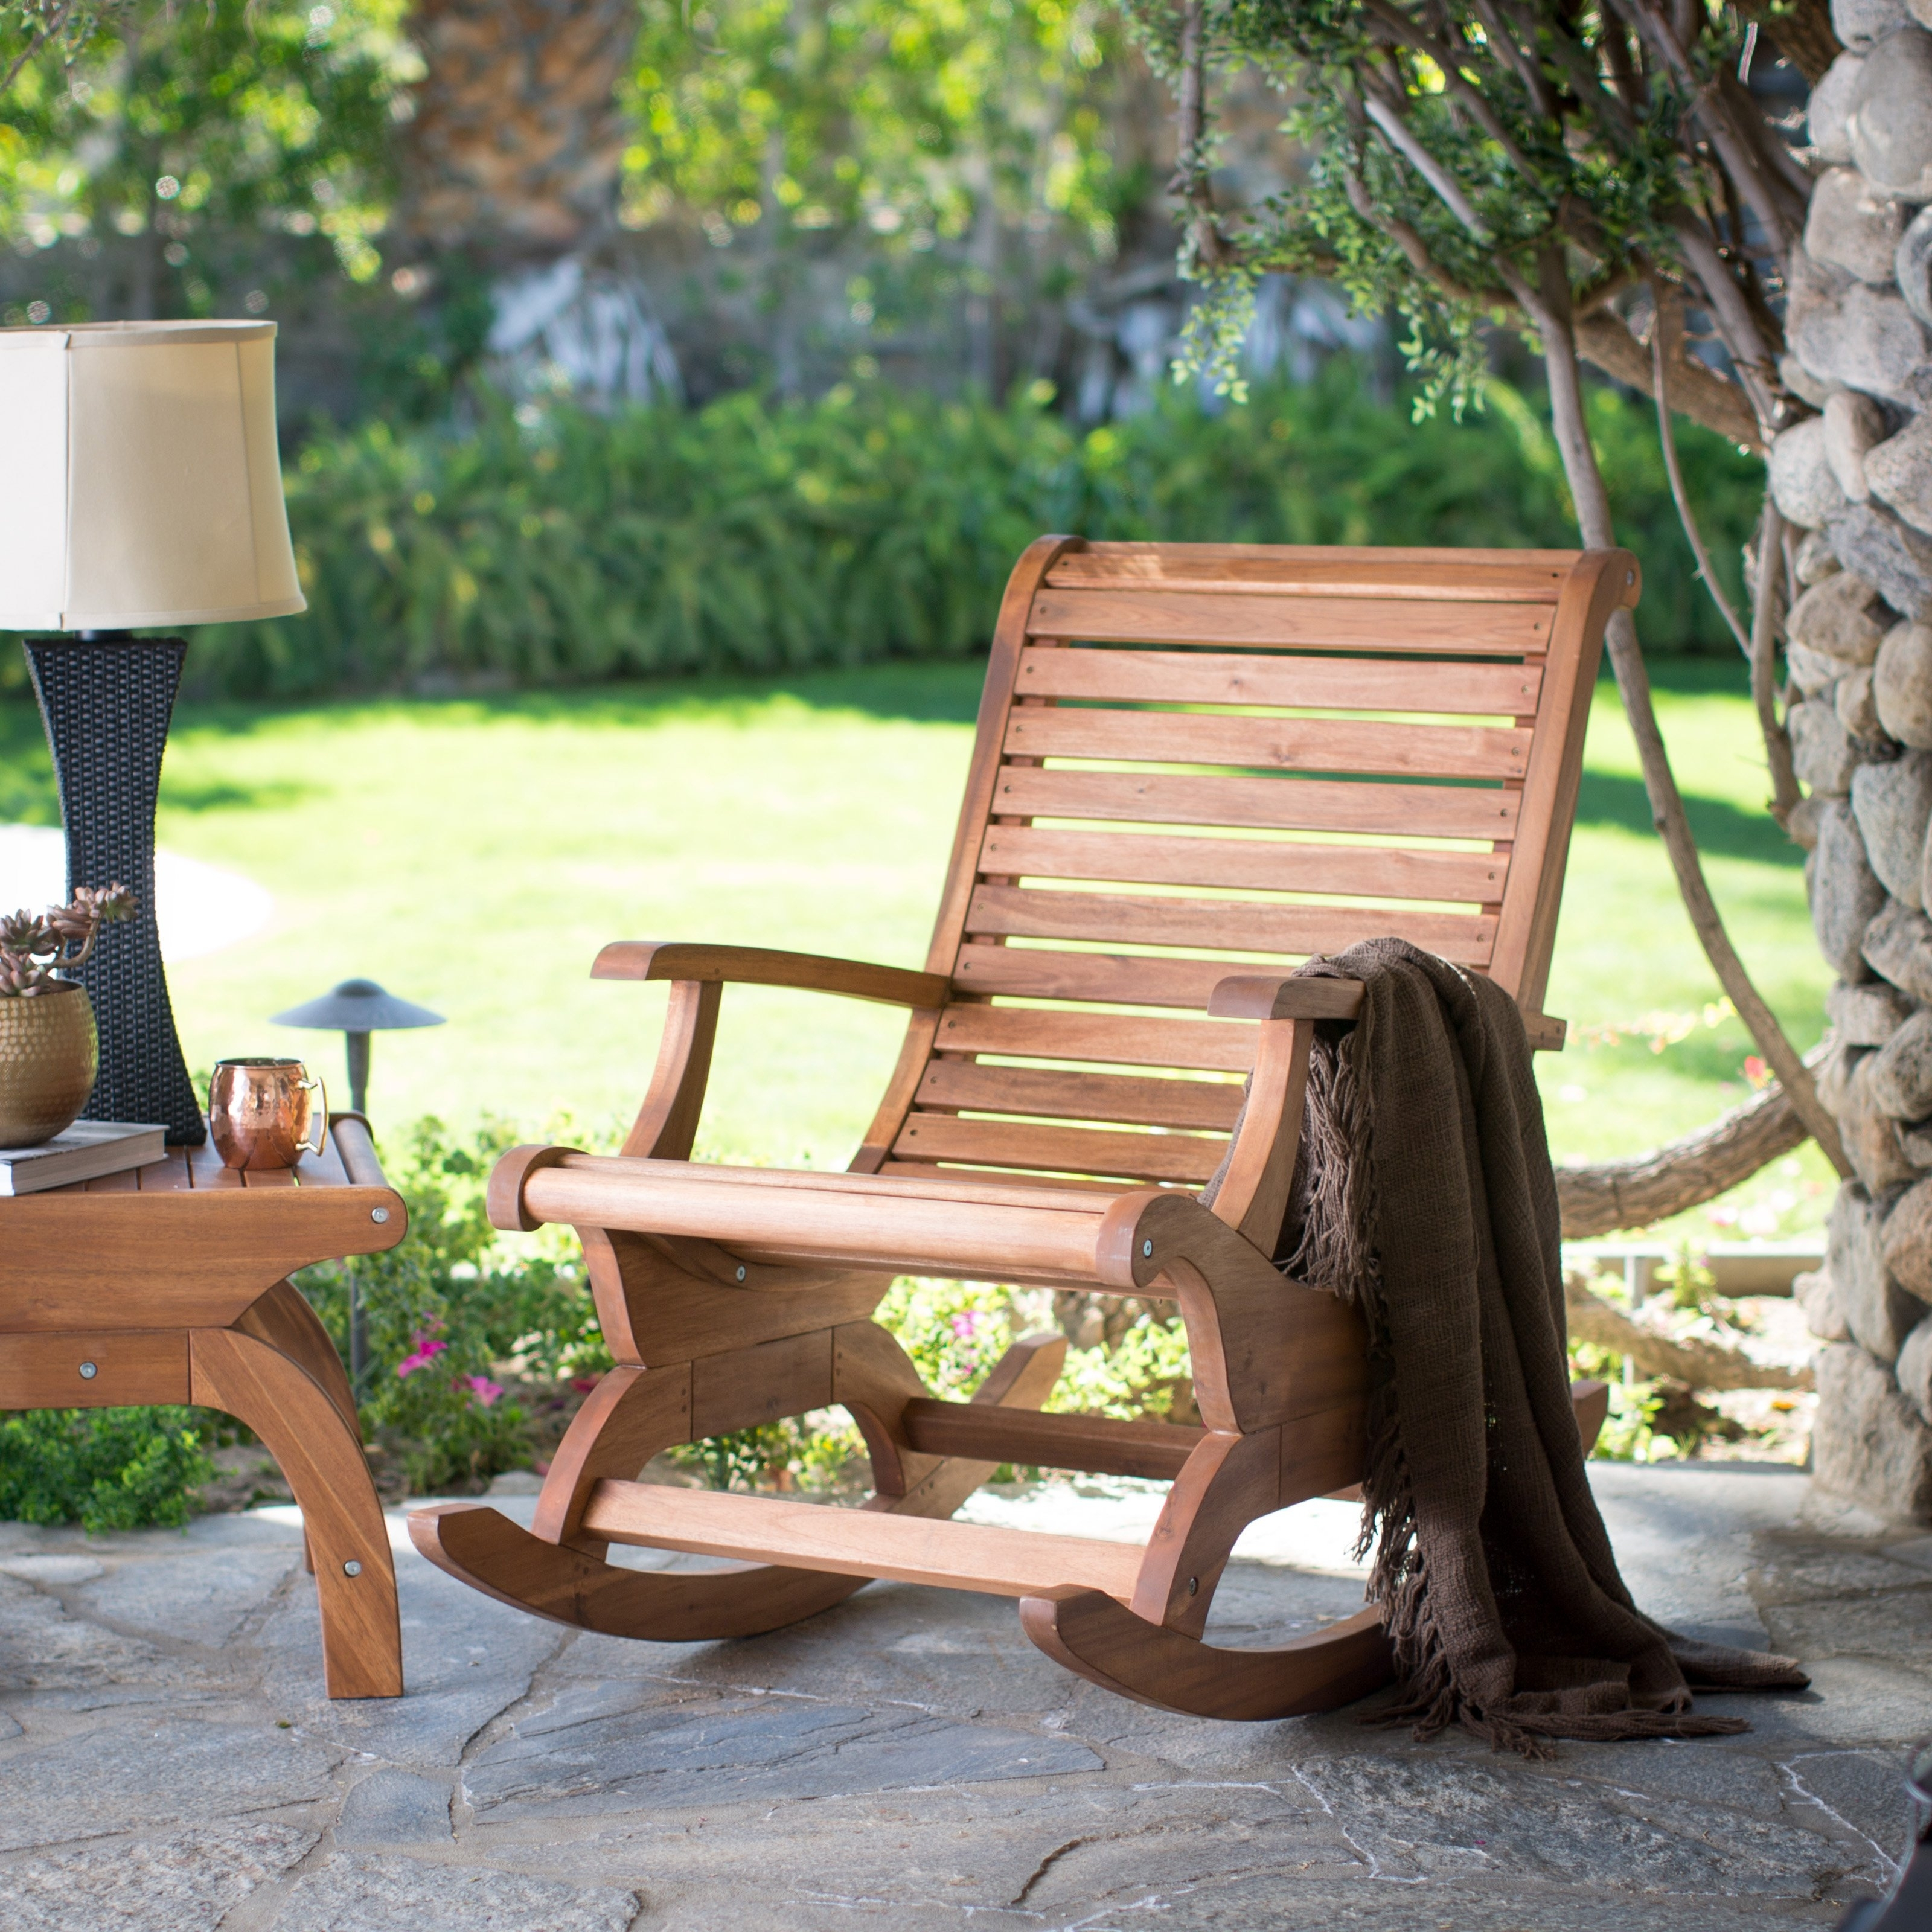 Belham Living Avondale Oversized Outdoor Rocking Chair – Natural For Rocking Chairs For Garden (#1 of 15)